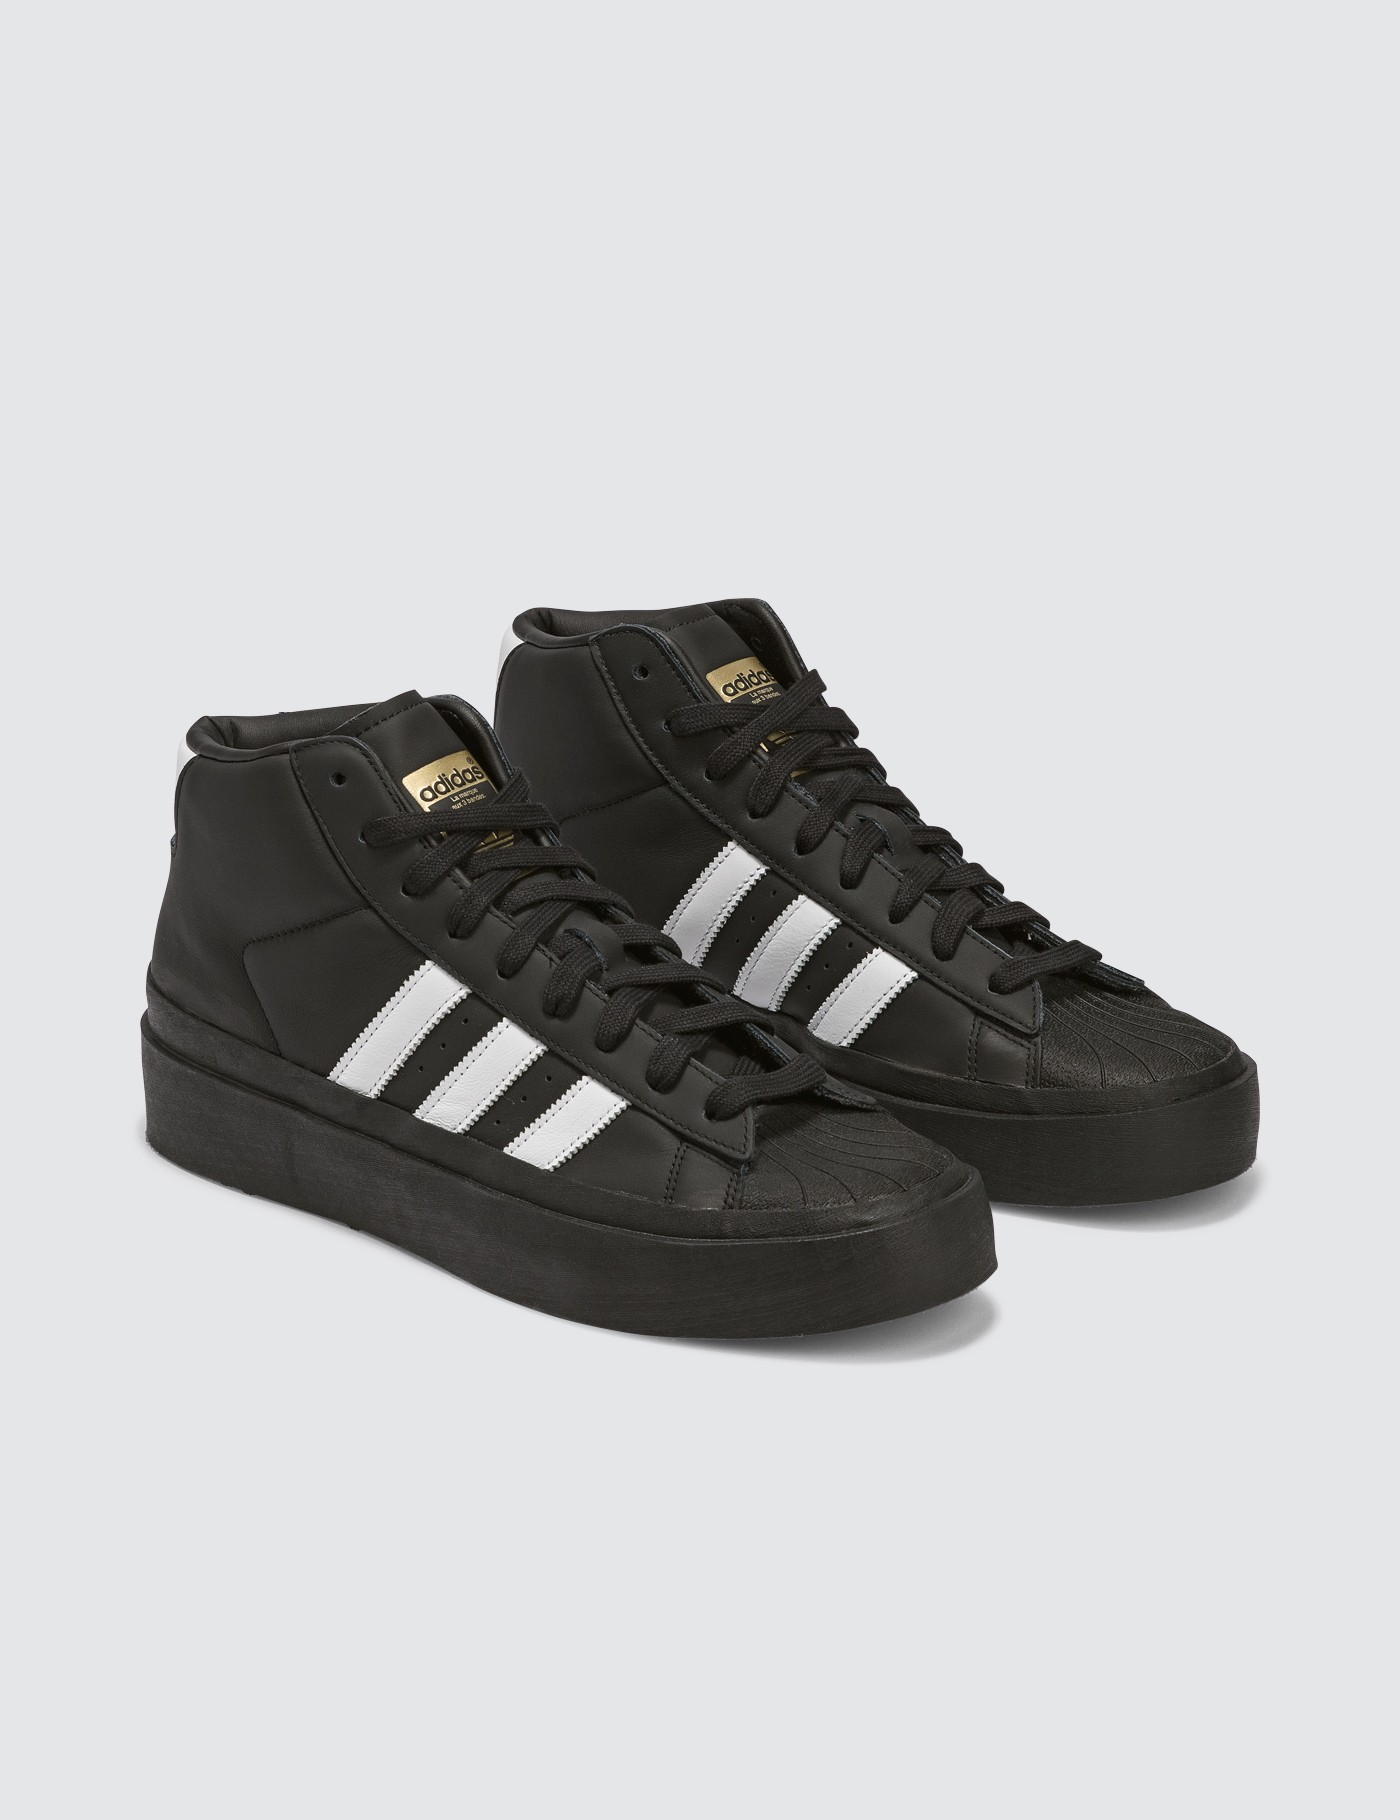 Adidas Originals 424 x Adidas Consortium Pro Model